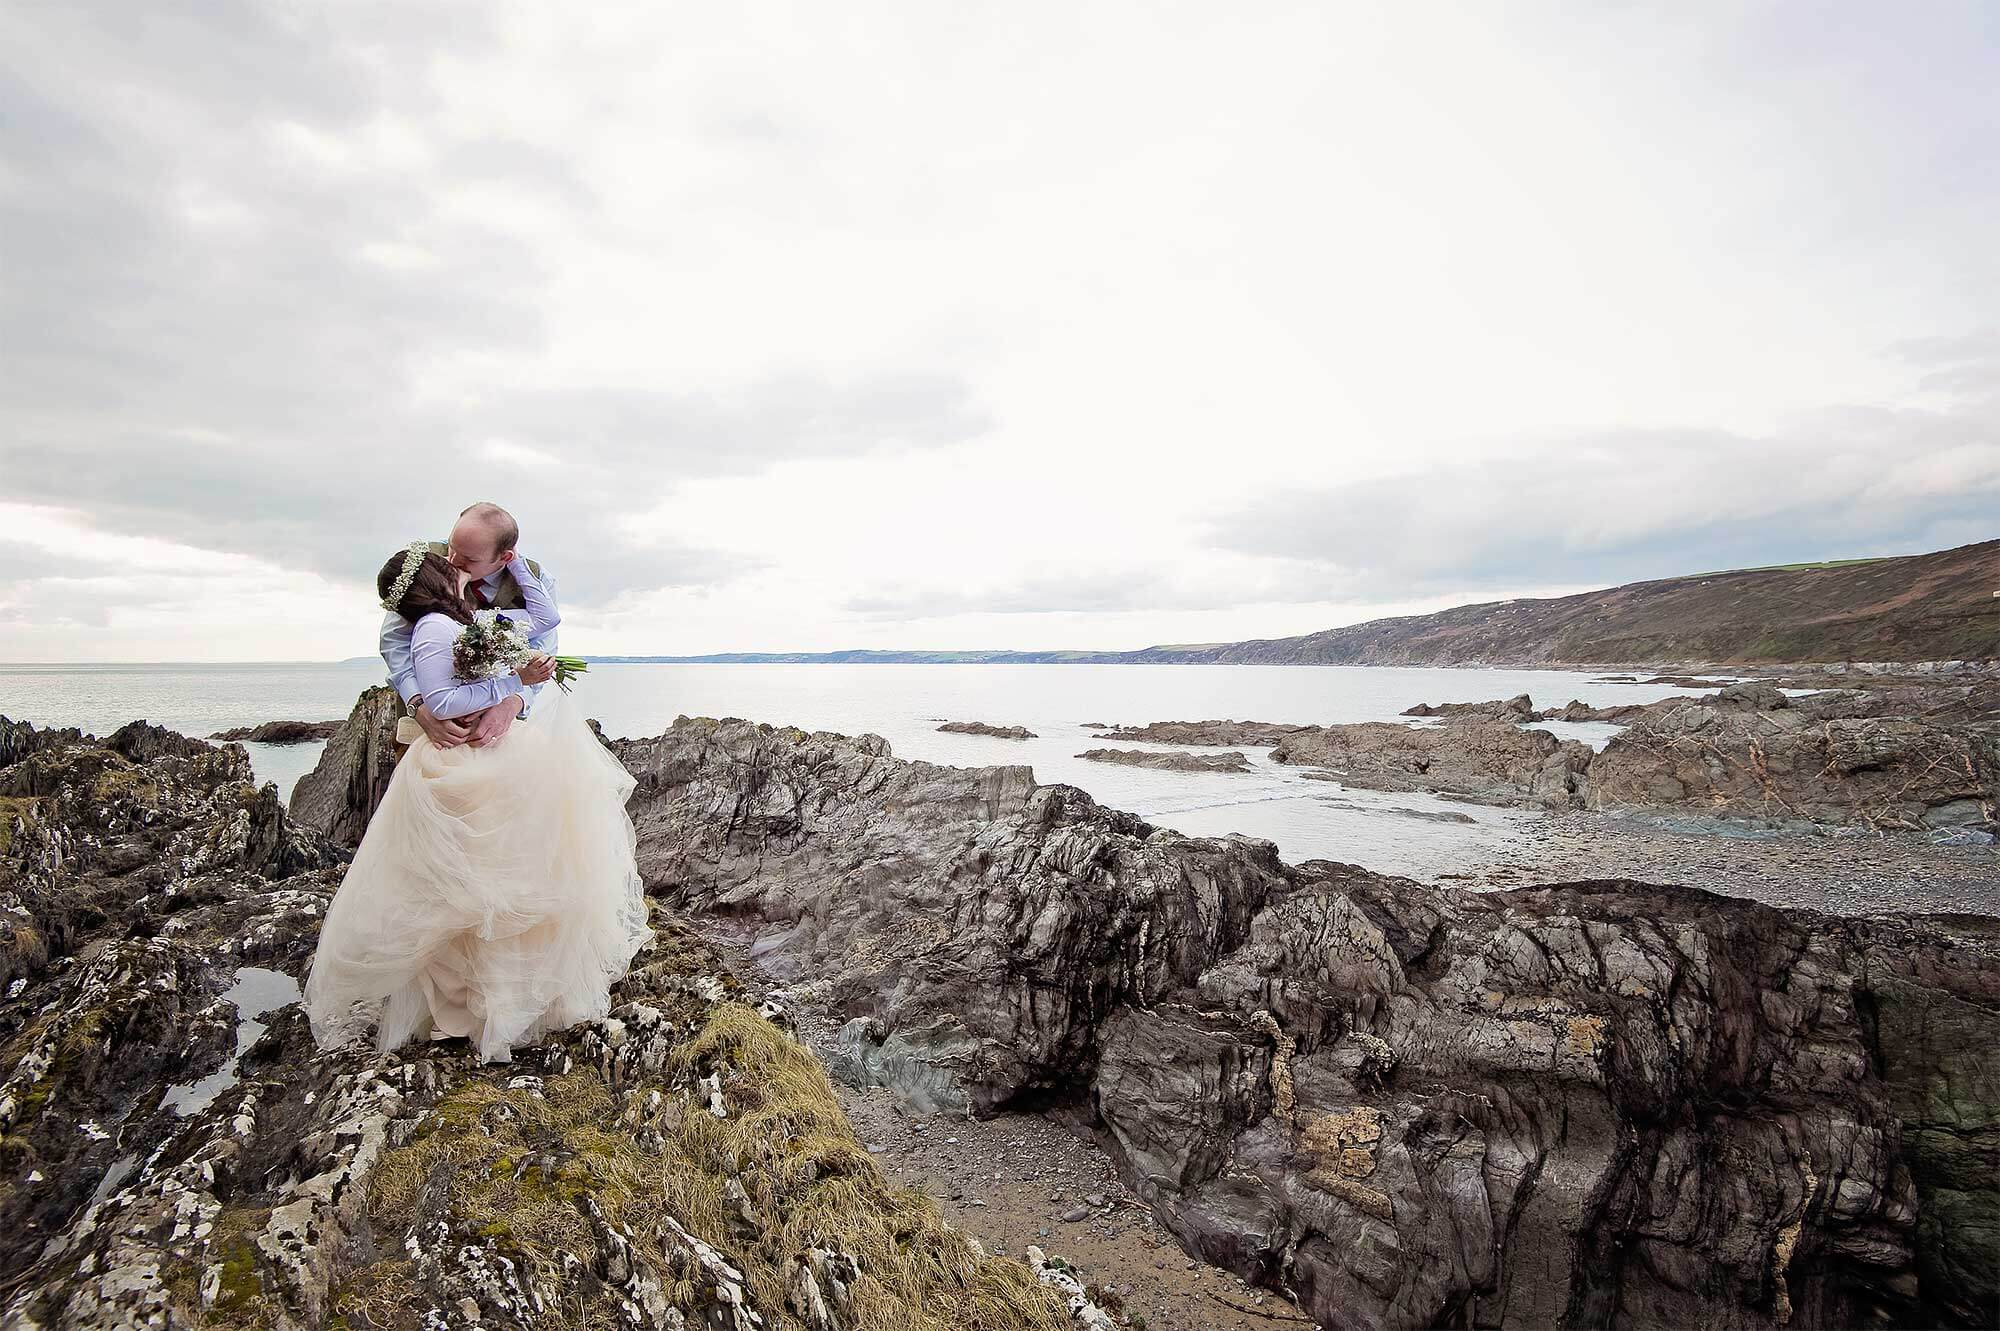 Bride and groom kiss on rocks at Cornish beach wedding at Polhawn Fort.